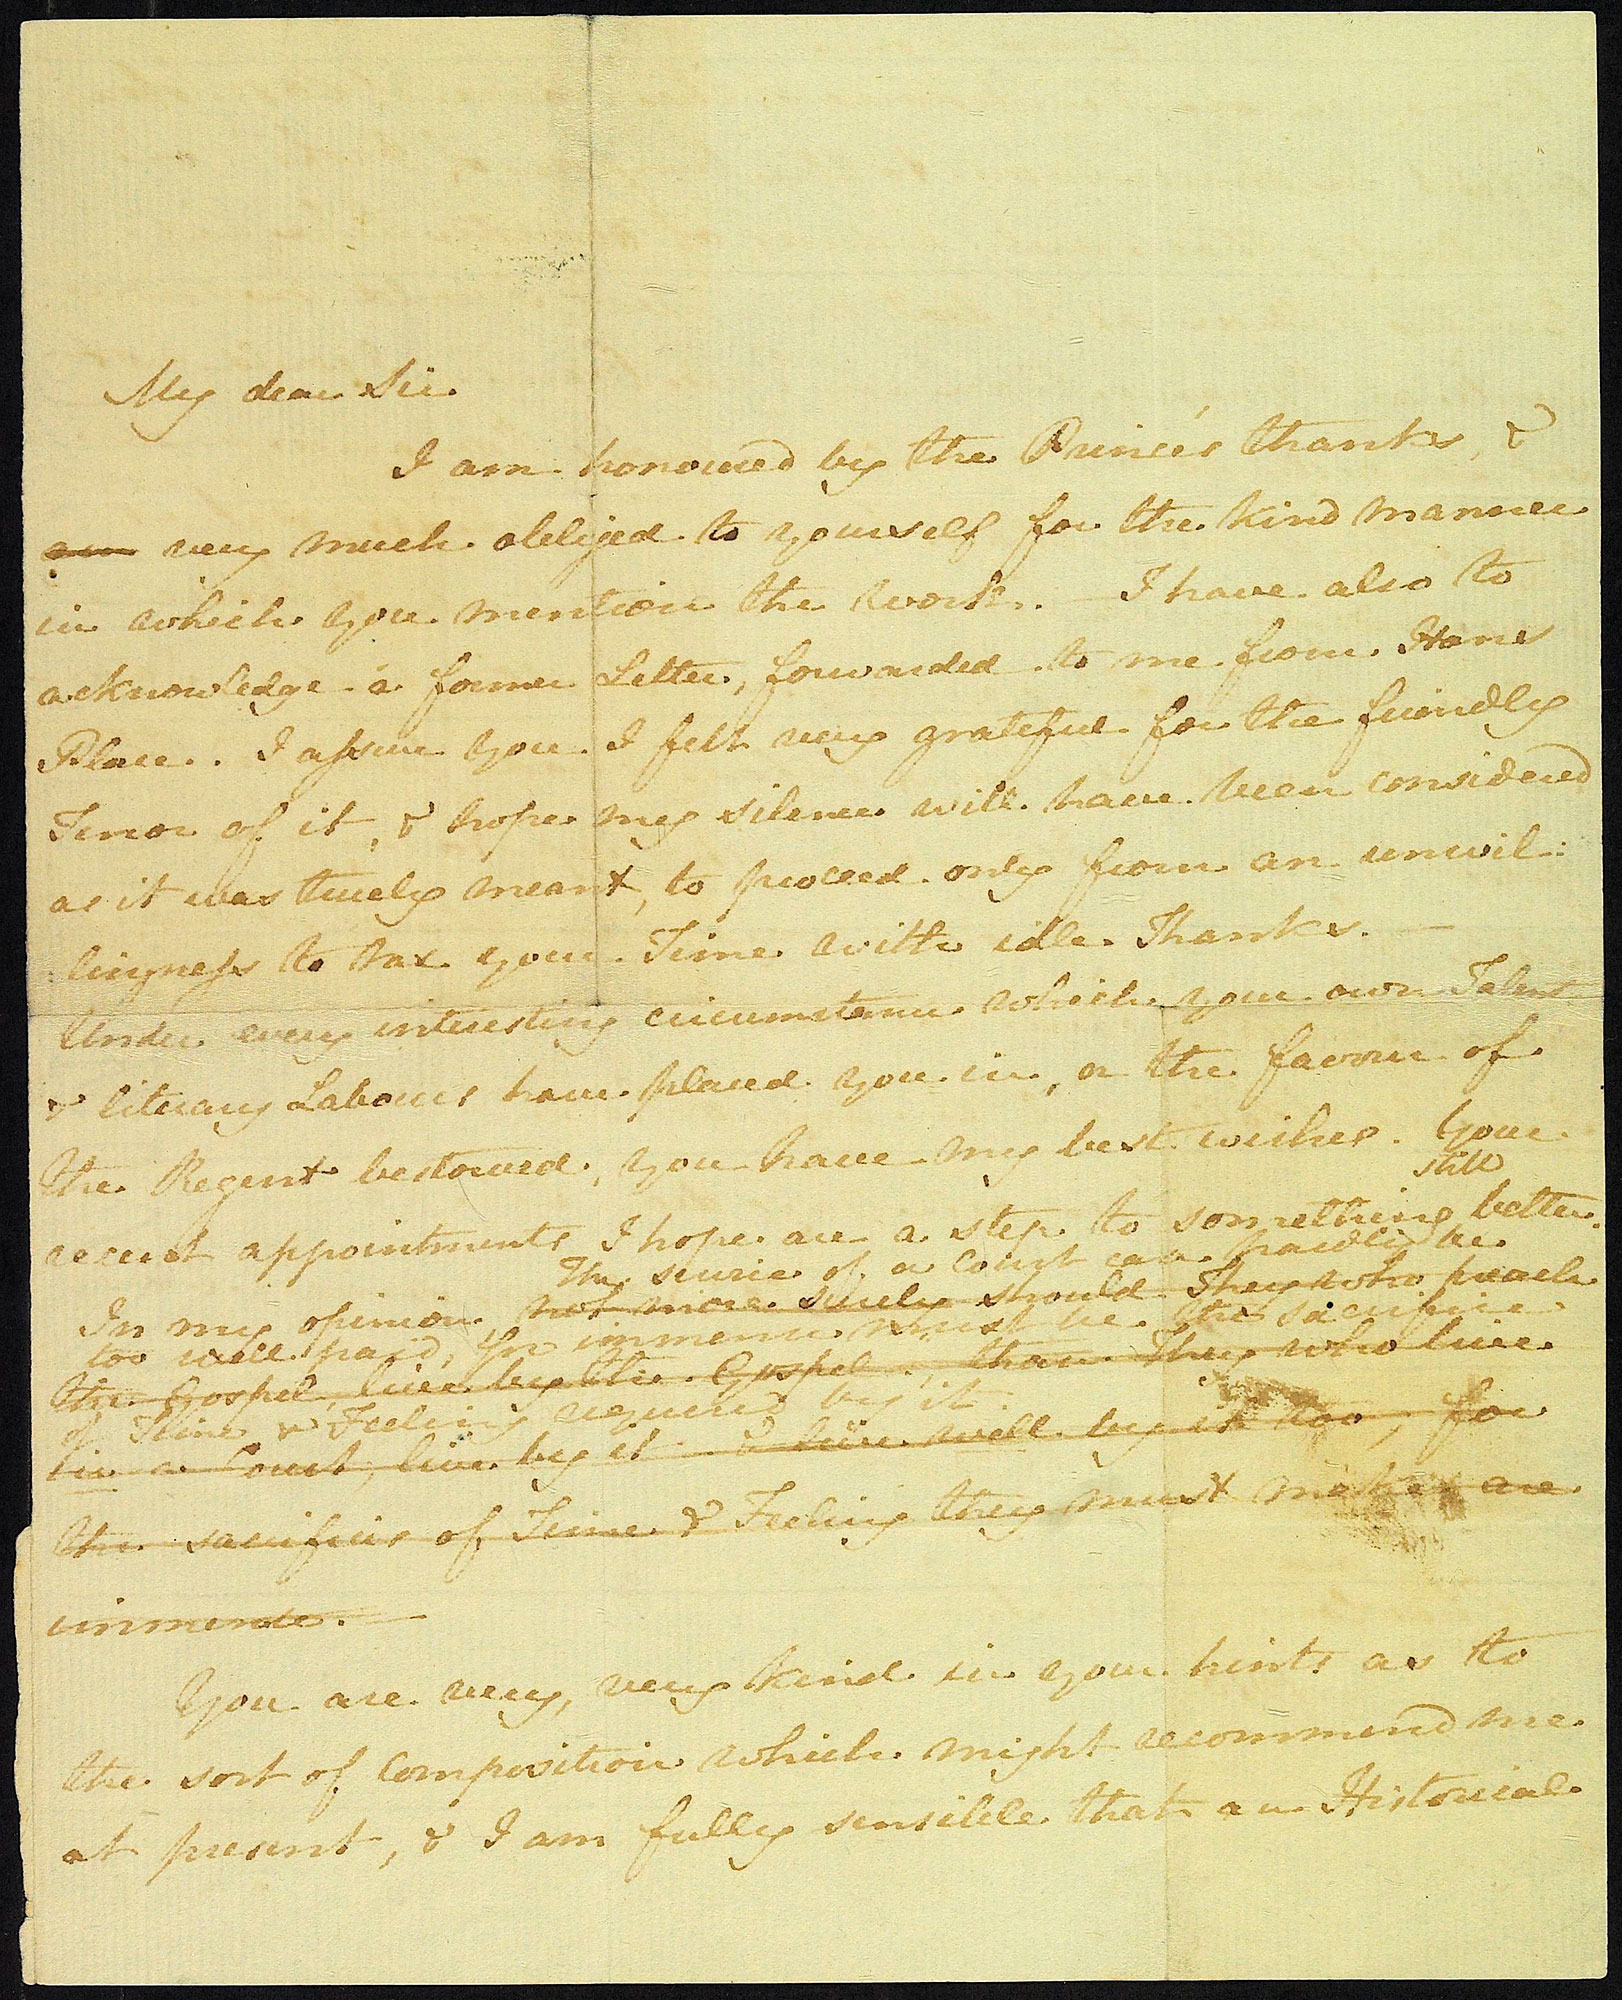 Letter from Jane Austen to James Stanier Clarke, 1 April 1816